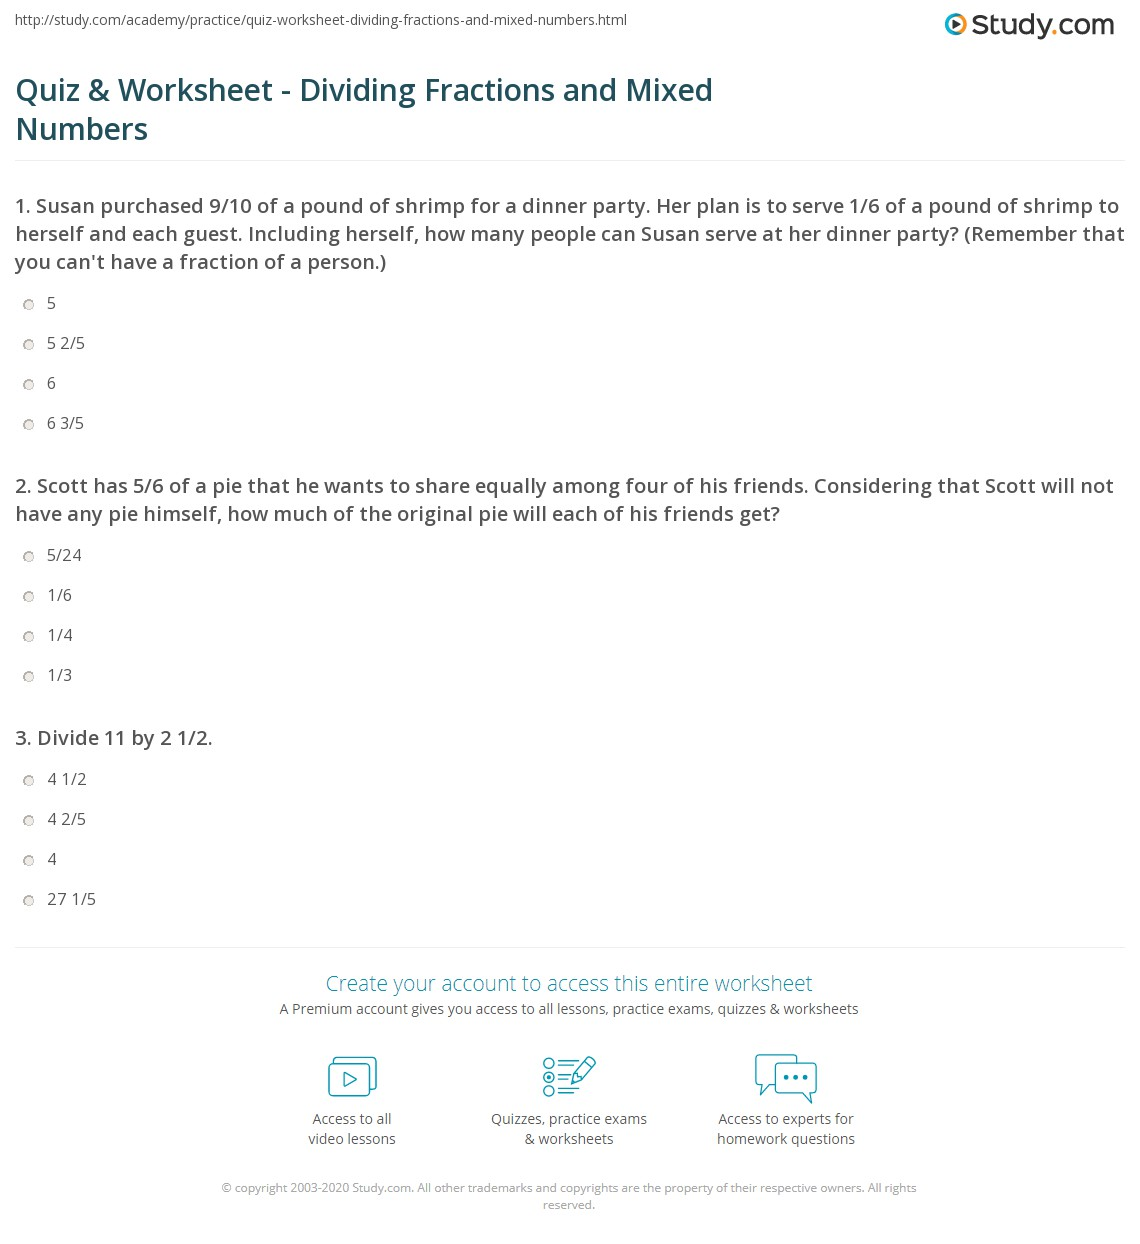 Quiz & Worksheet - Dividing Fractions and Mixed Numbers | Study.com